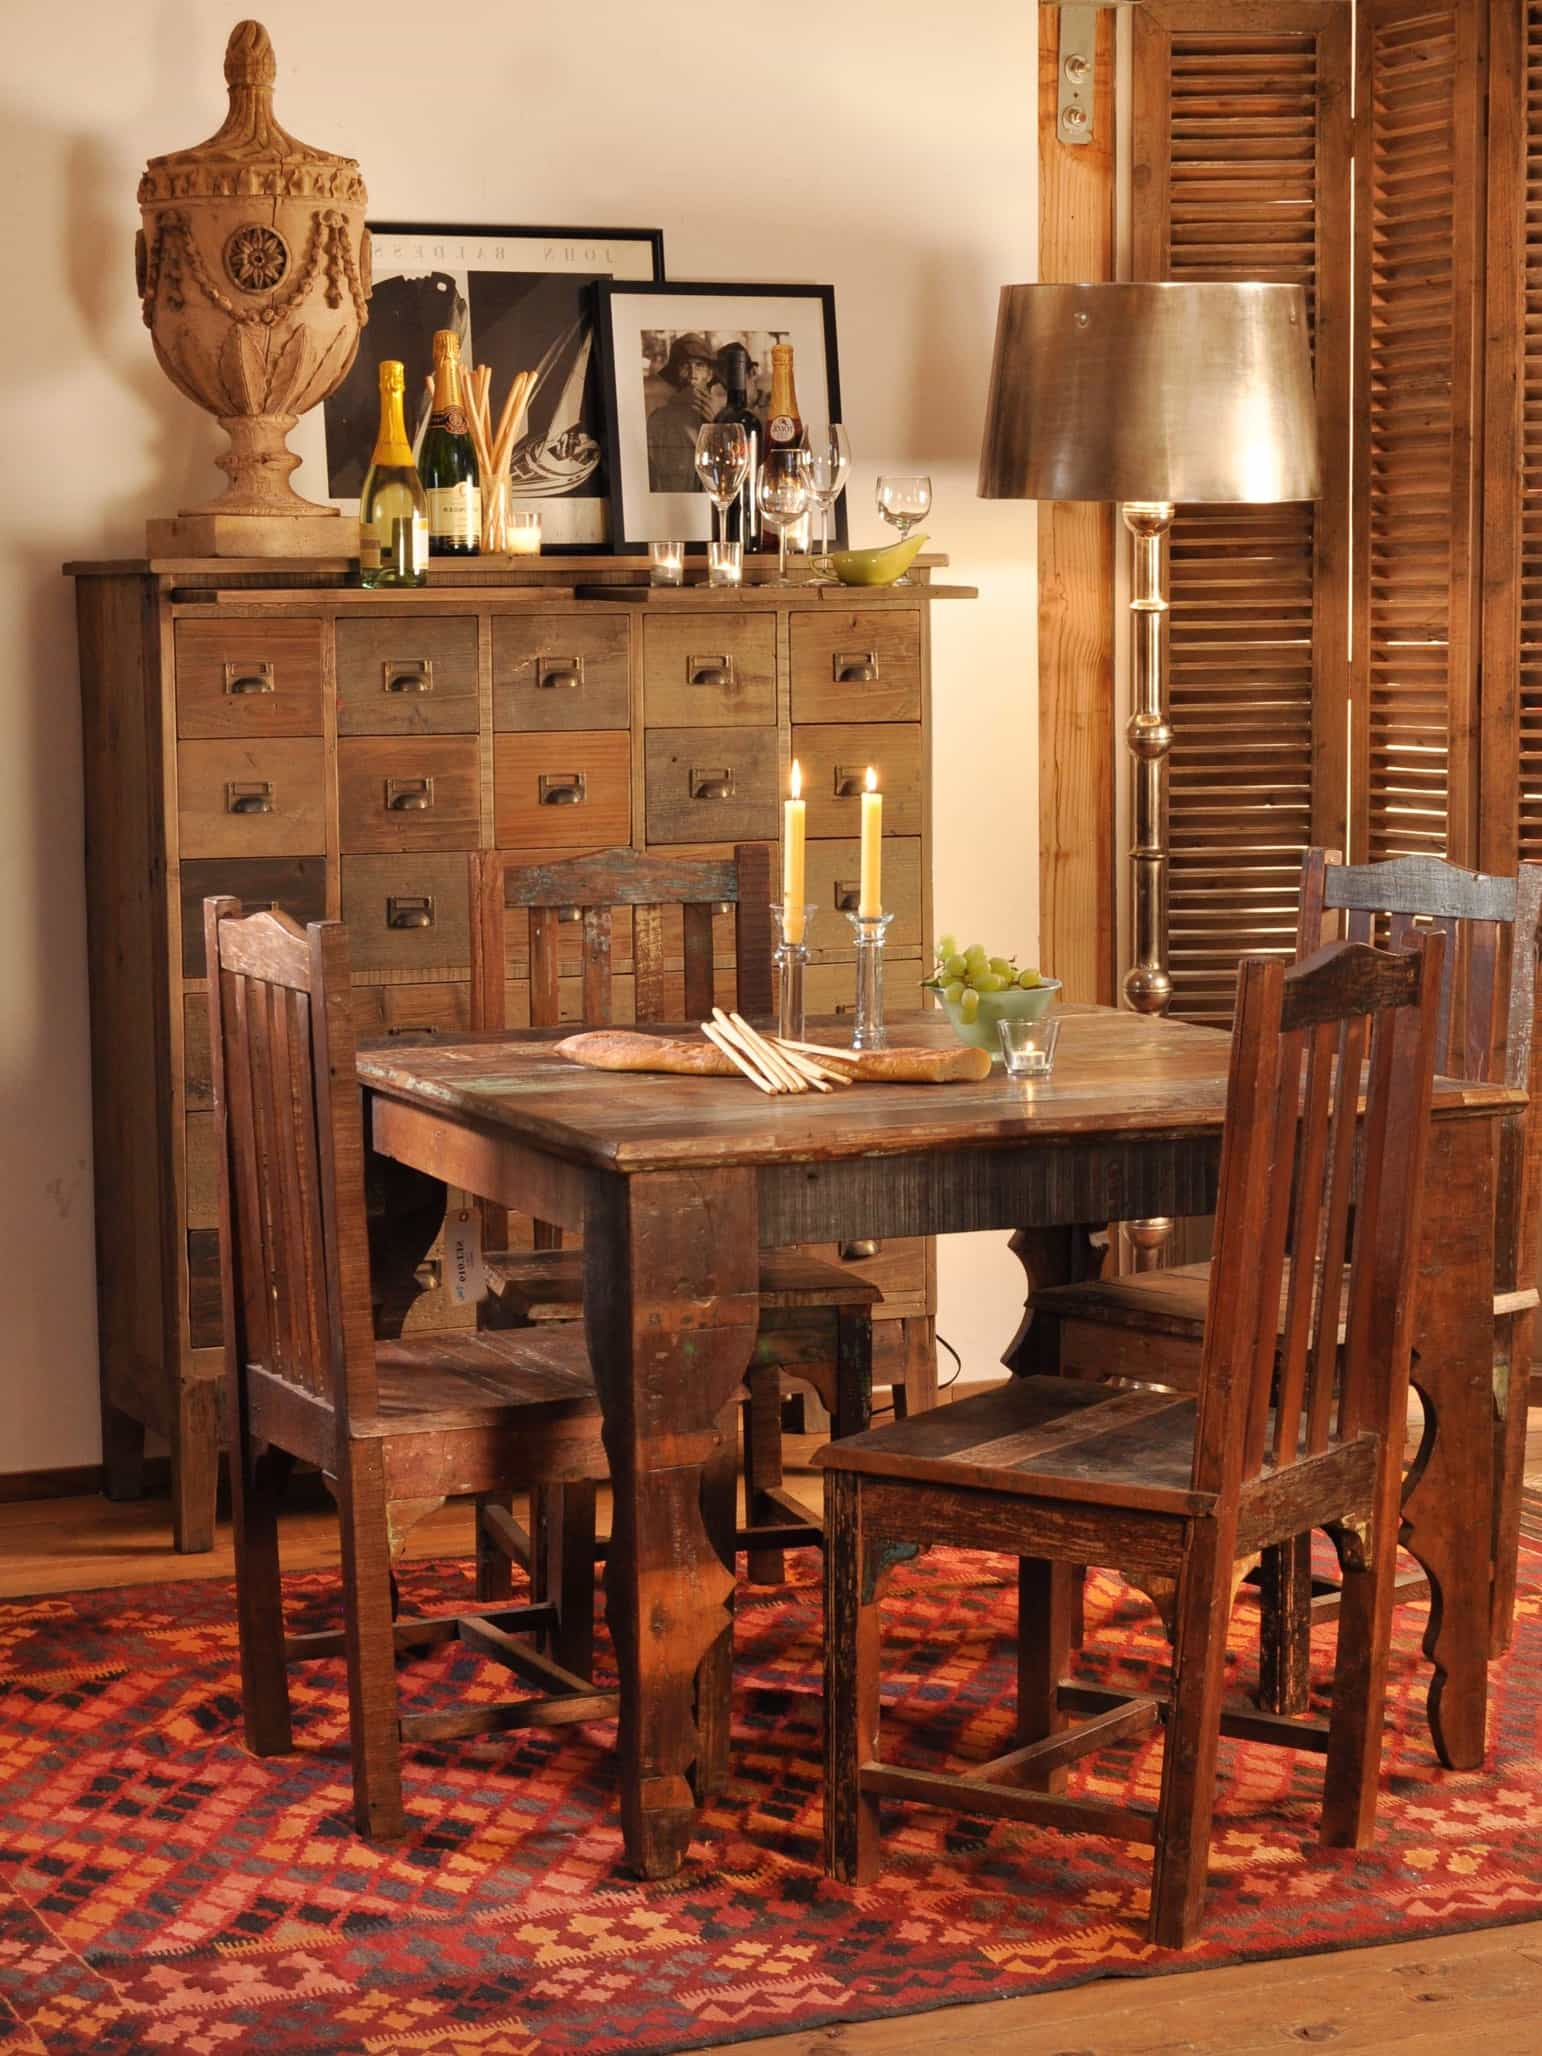 Featured Image of Asian Dining Room With Eclectic Craftsman Furniture